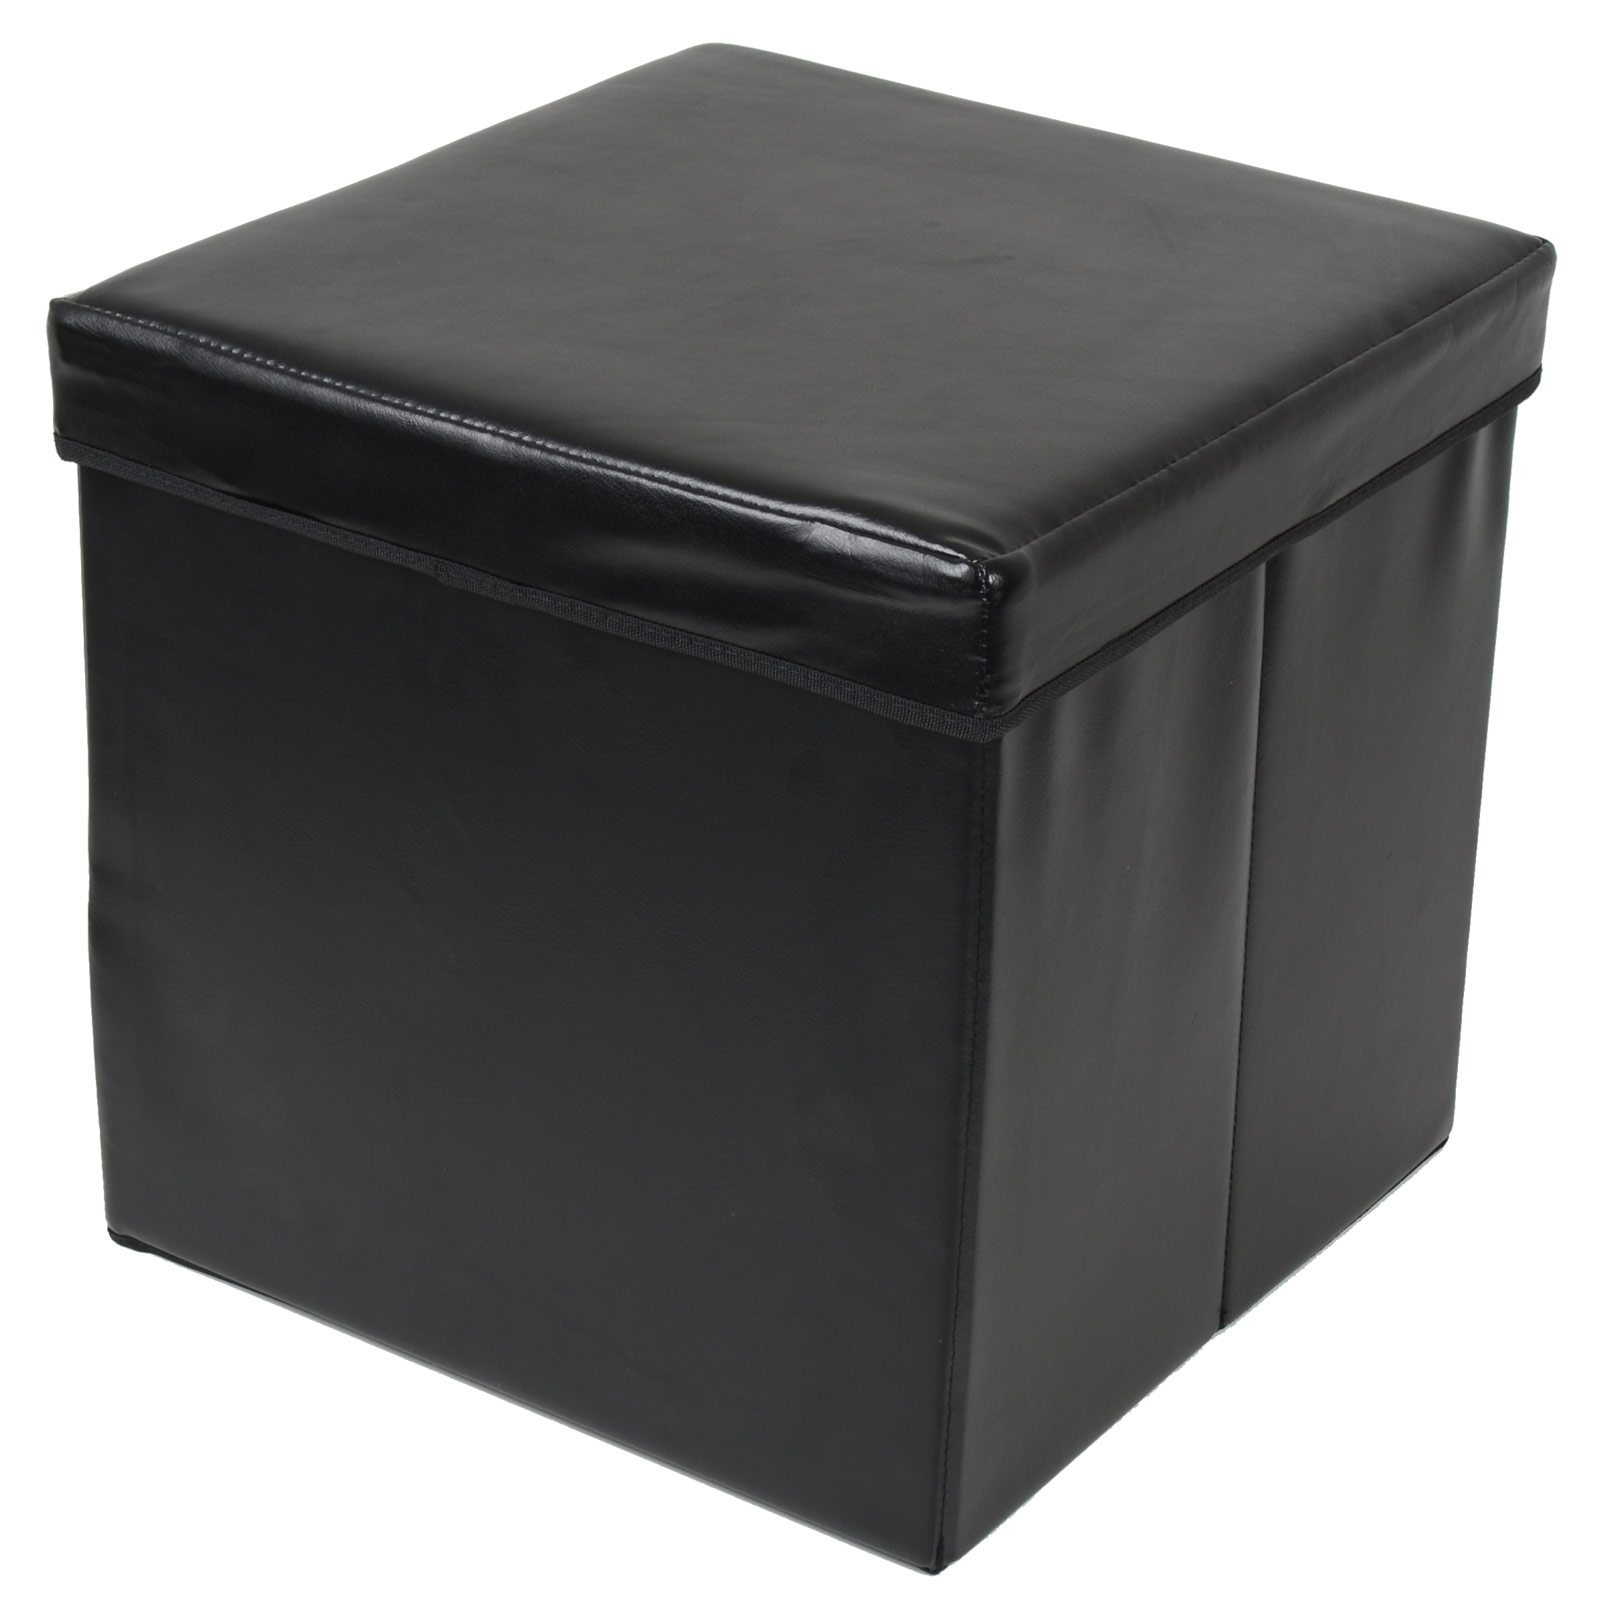 Ottoman Large Faux Leather Folding Storage Pouffe Toy Box Foot Pertaining To Pouffes And Footstools For Sale (Image 11 of 15)